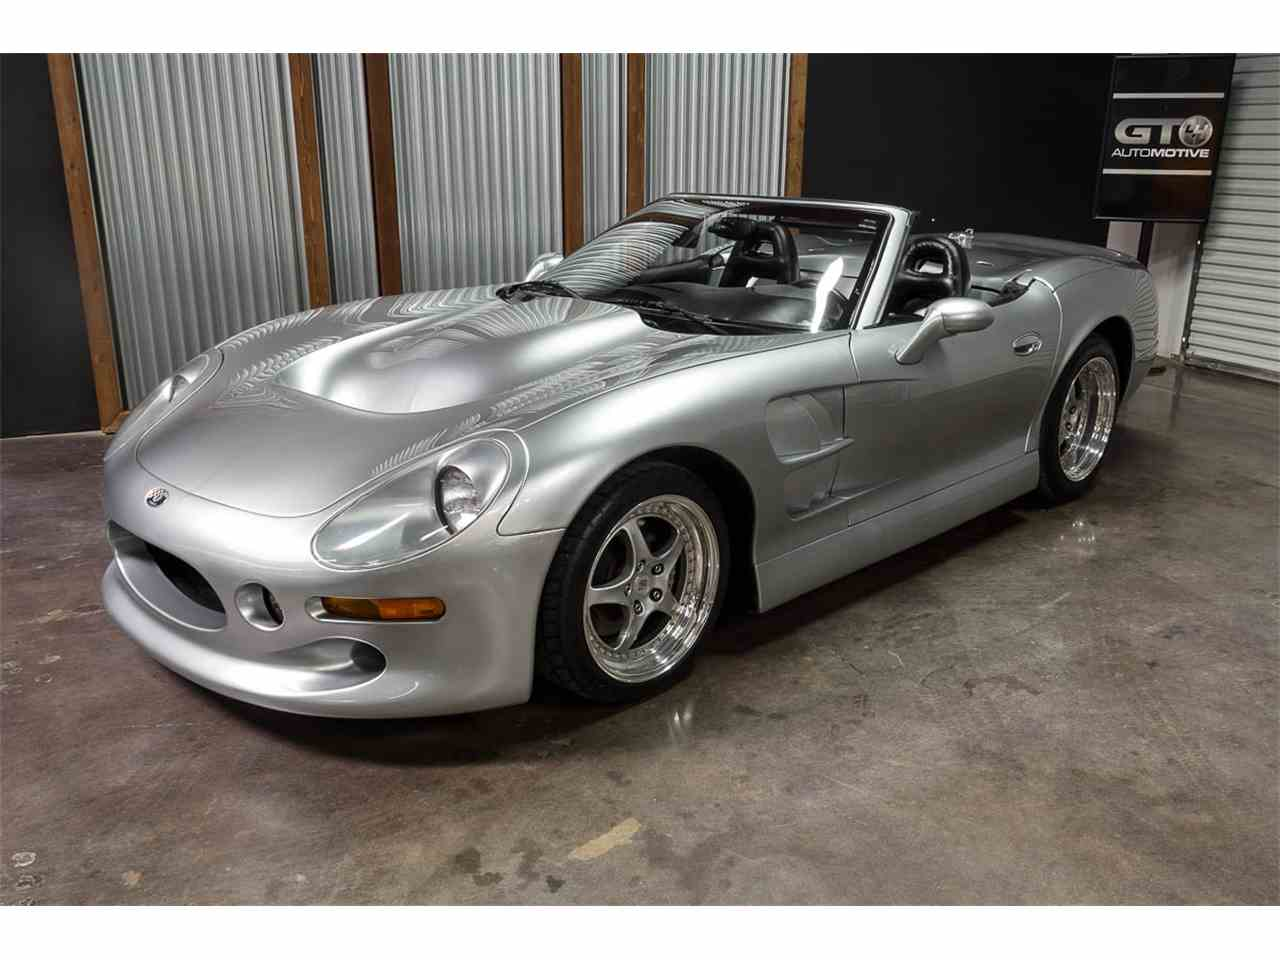 Large Picture of 1999 Shelby Series 1 located in Arlington Texas - $109,900.00 Offered by a Private Seller - M5H1